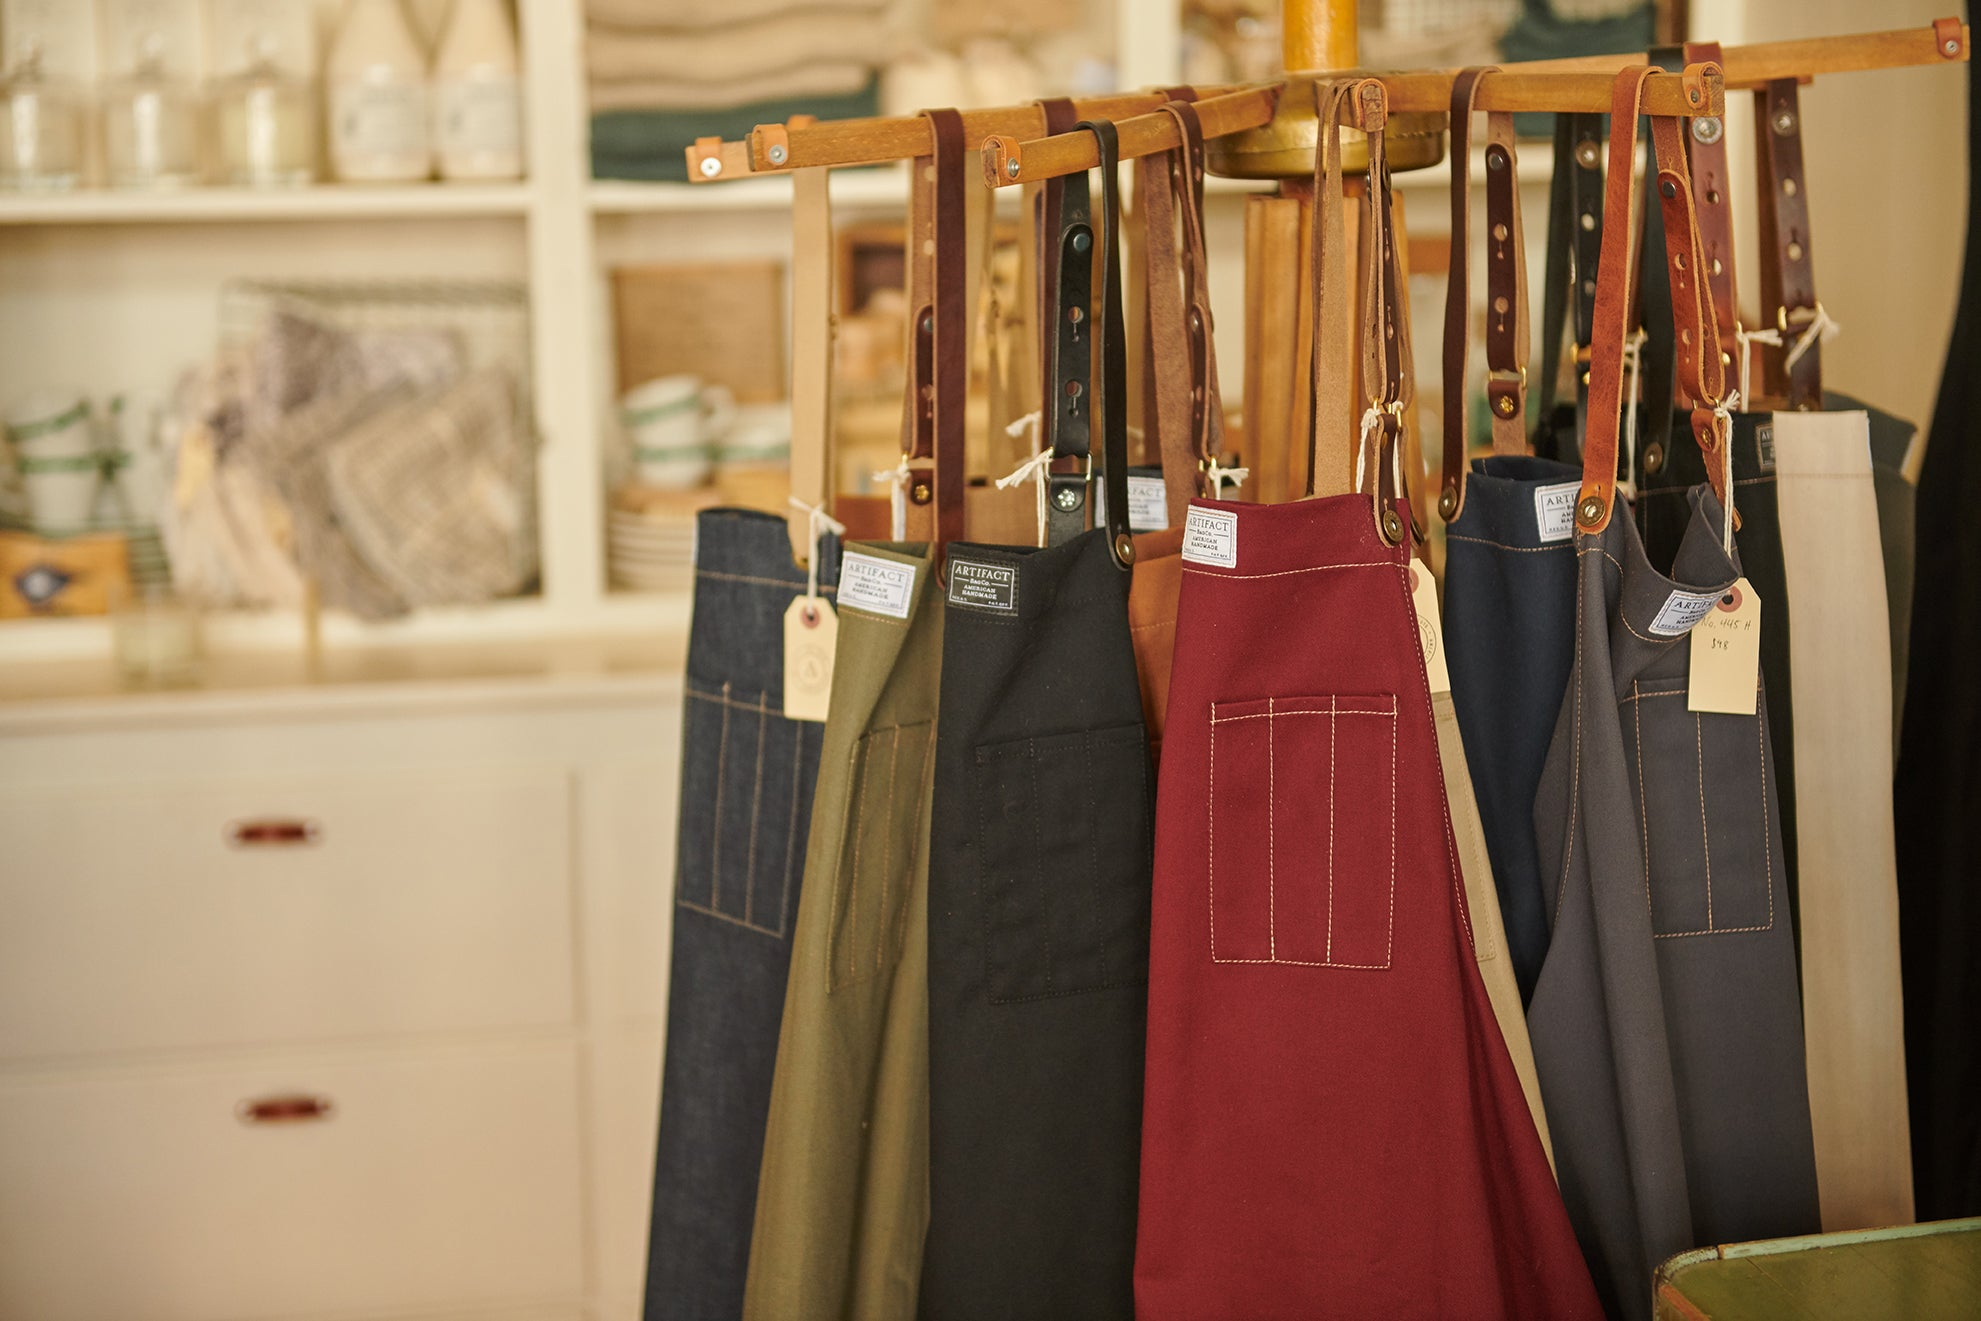 Handmade Aprons Displayed In Artifact's Omaha Retail Store